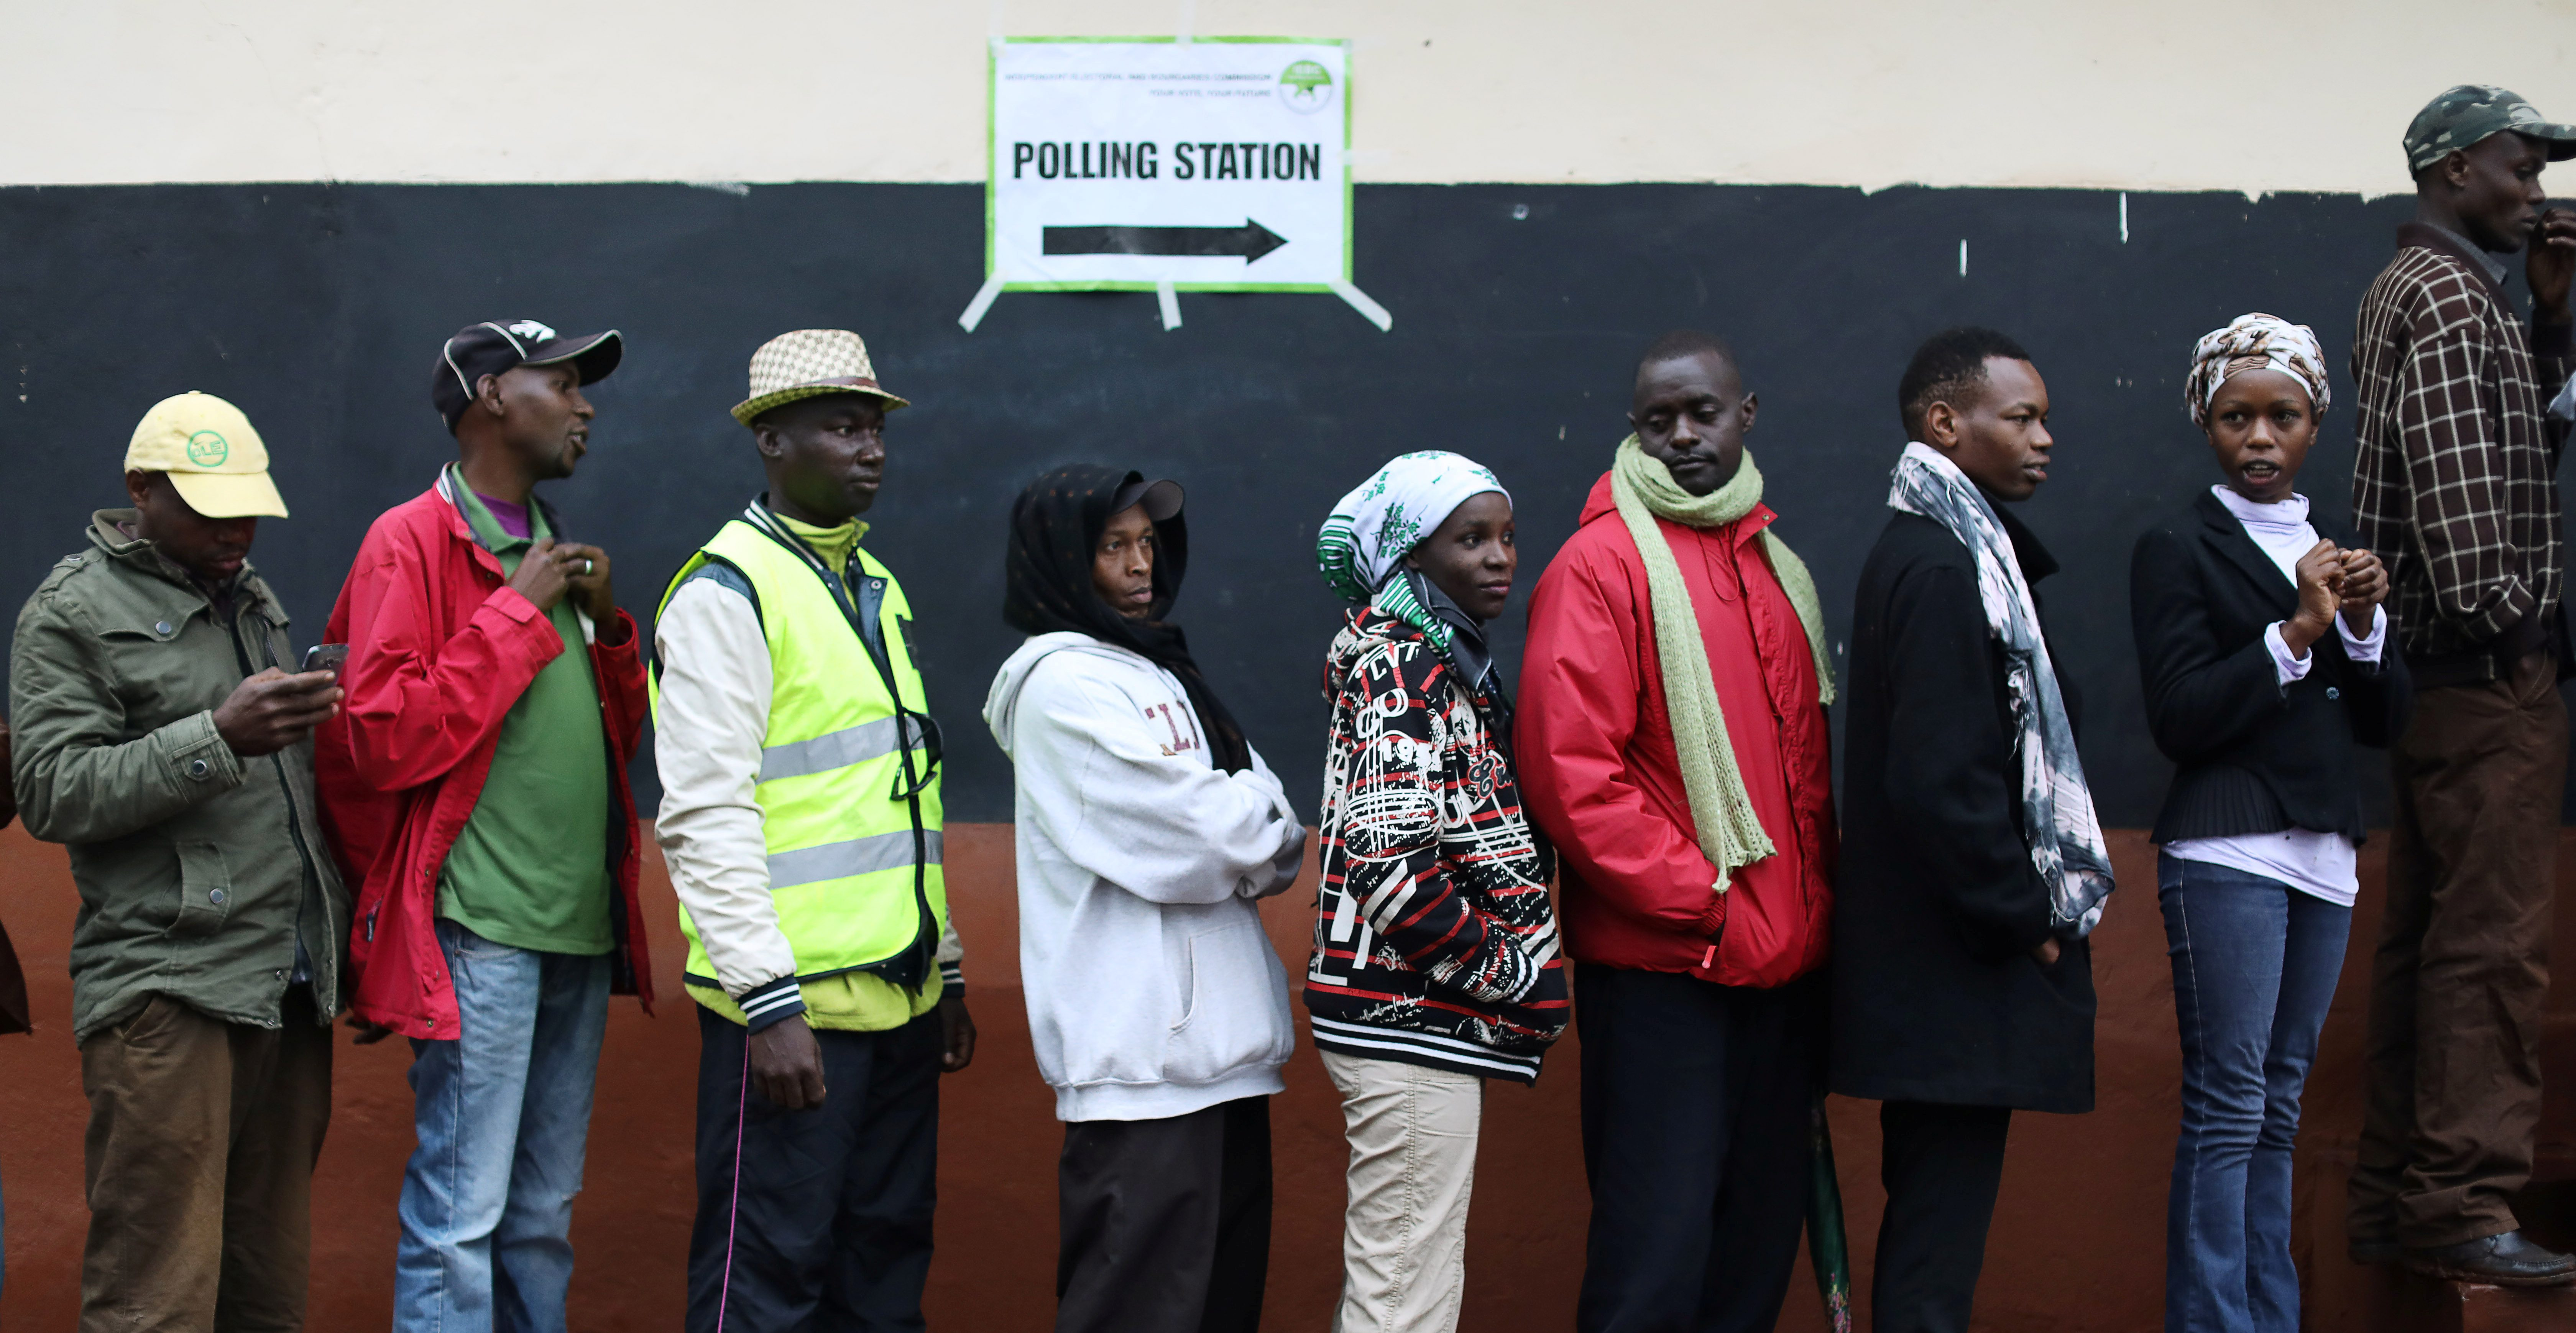 People queue to cast their vote at a polling station during a presidential election re-run in Gatundu, Kenya October 26, 2017.